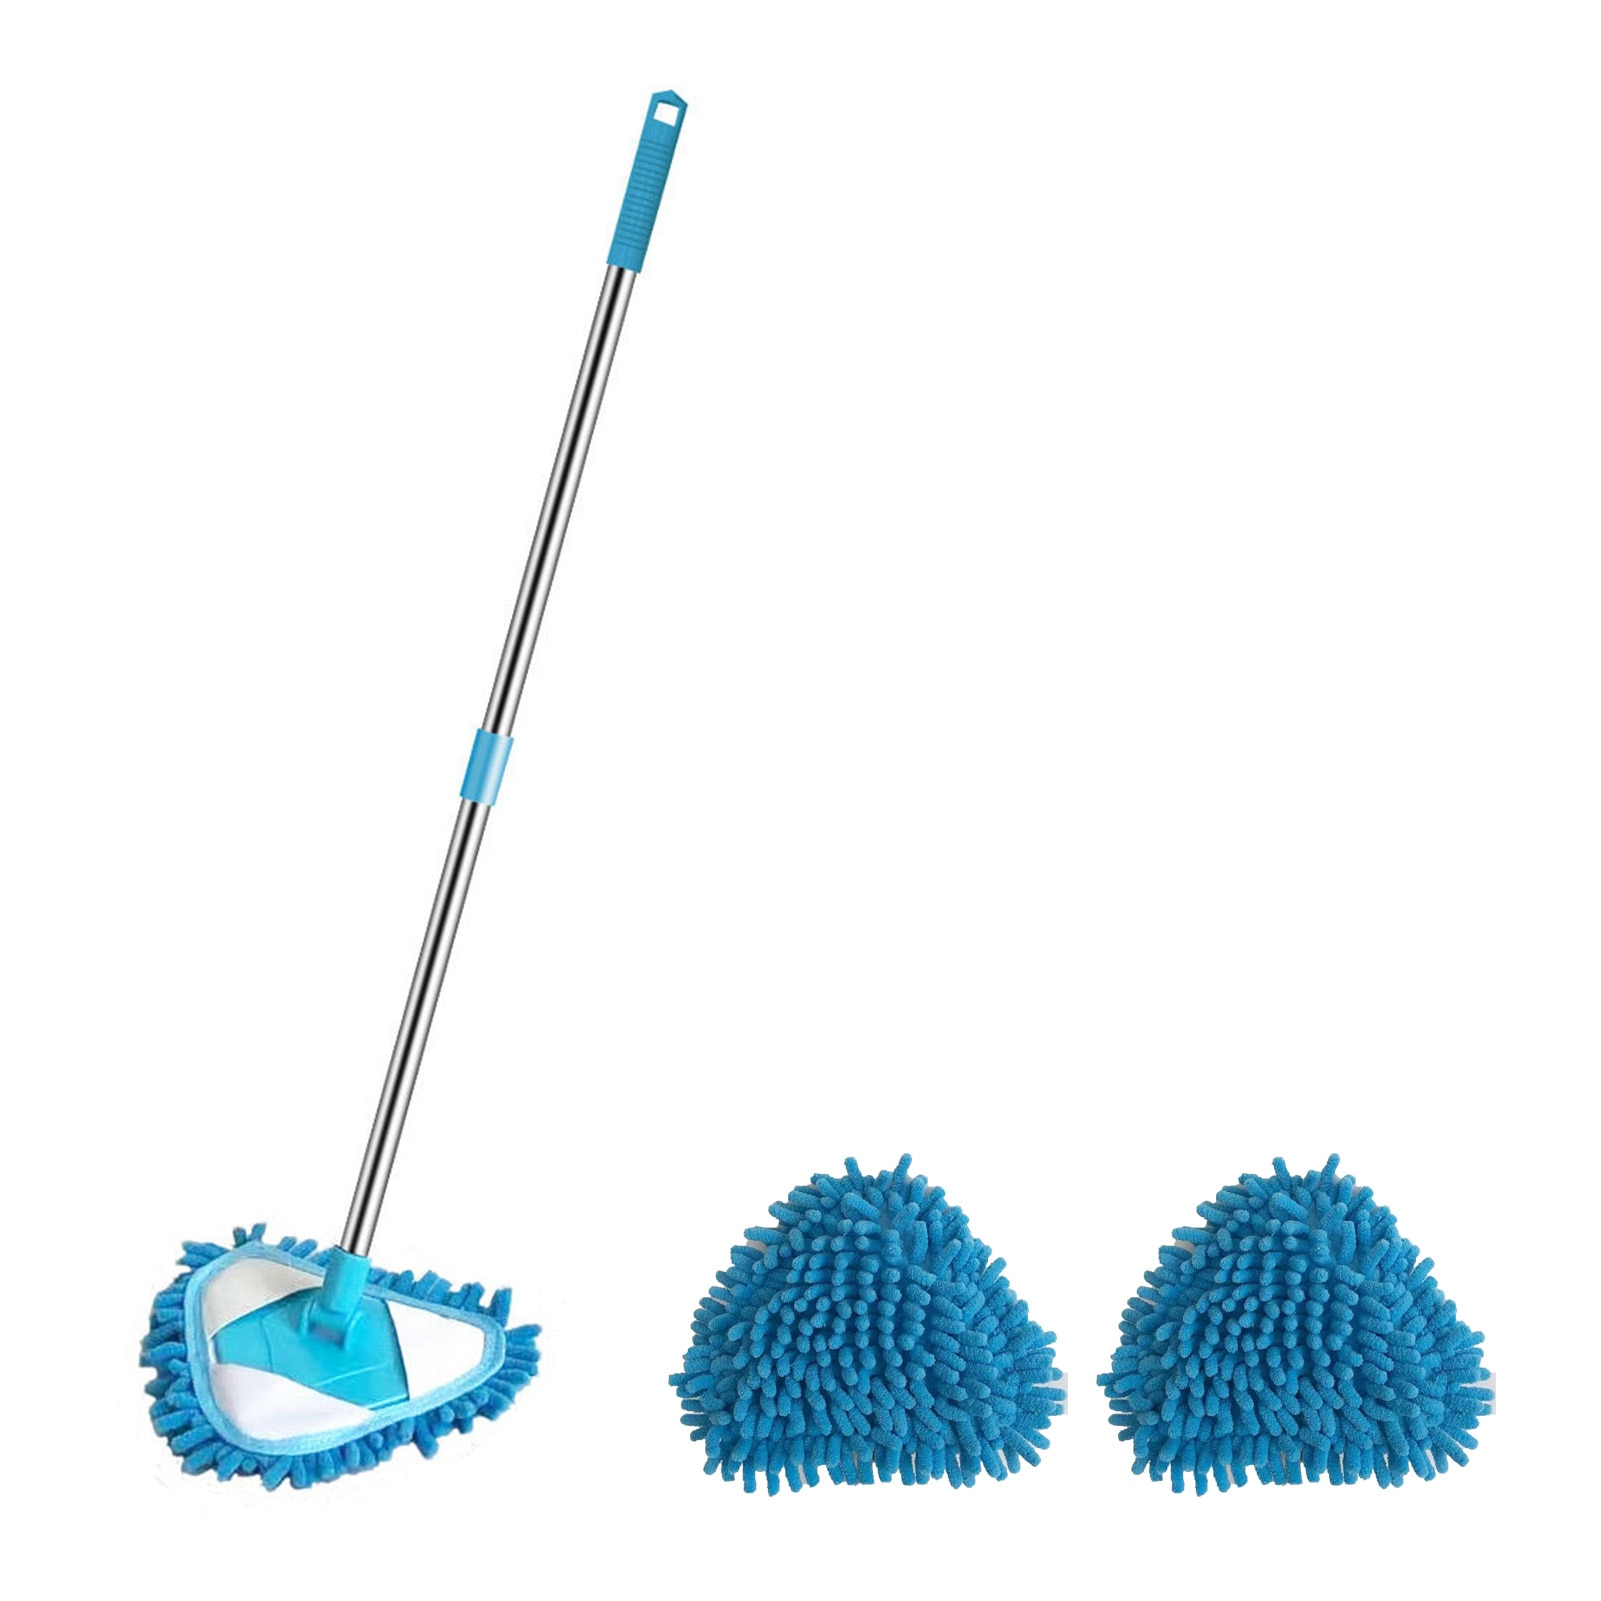 lazy triangle cleaning mop retractable instant water cleaning mop rotatable triangle dust mop for mirror glass ceiling corn Lazy Triangle Cleaning Mop Retractable Cleaning Mini Mop Rotatable Triangle Dust Mop Dust Brush Home Clean Tools